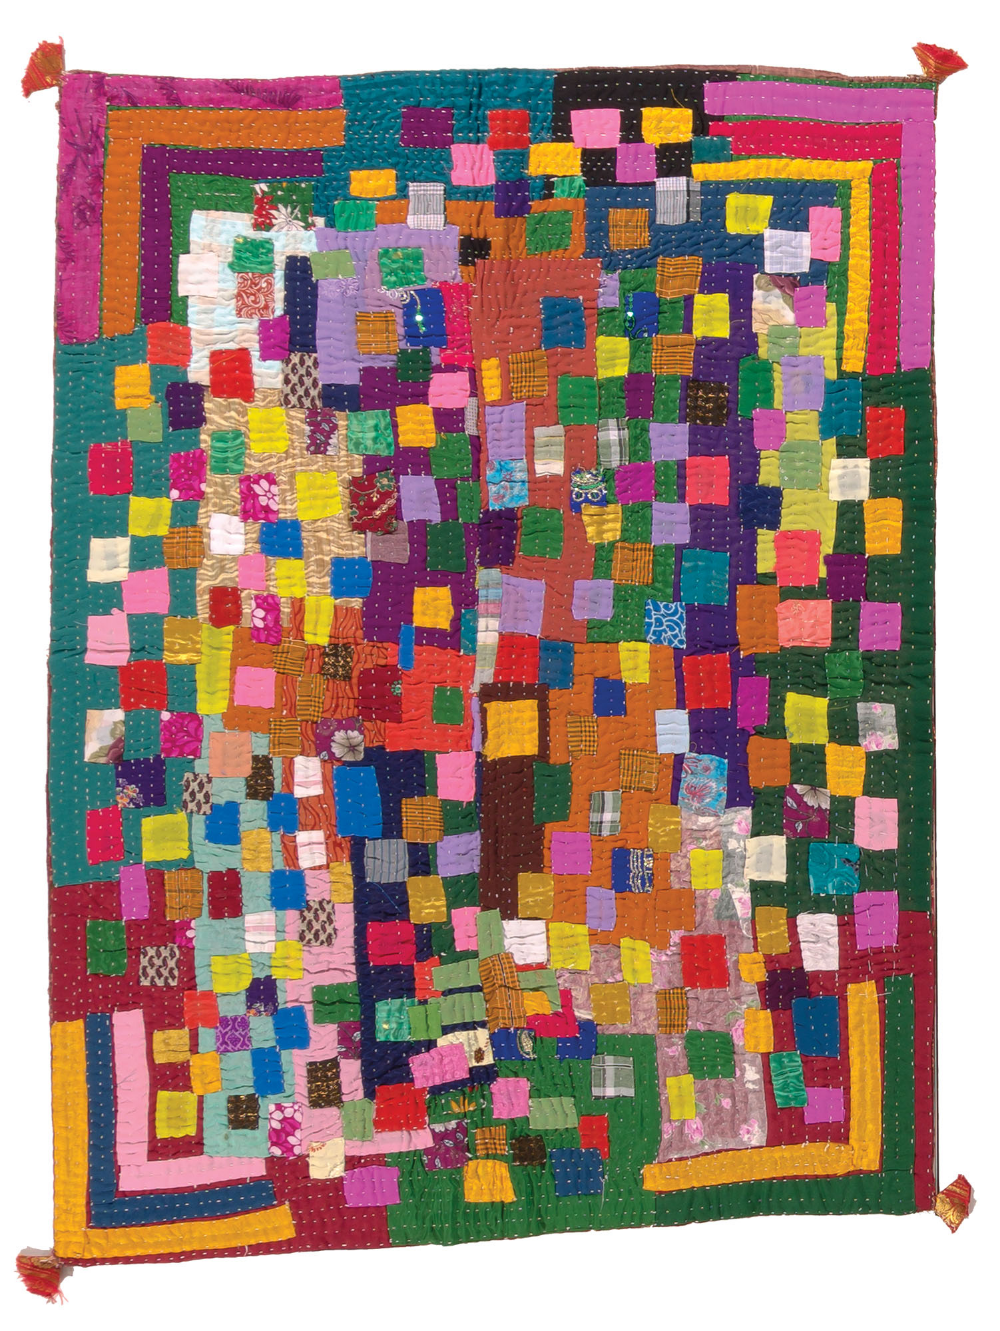 Collecting And Recollecting International Quilt Museum Lincoln Ne Quilts Patchwork Top Creative Artists